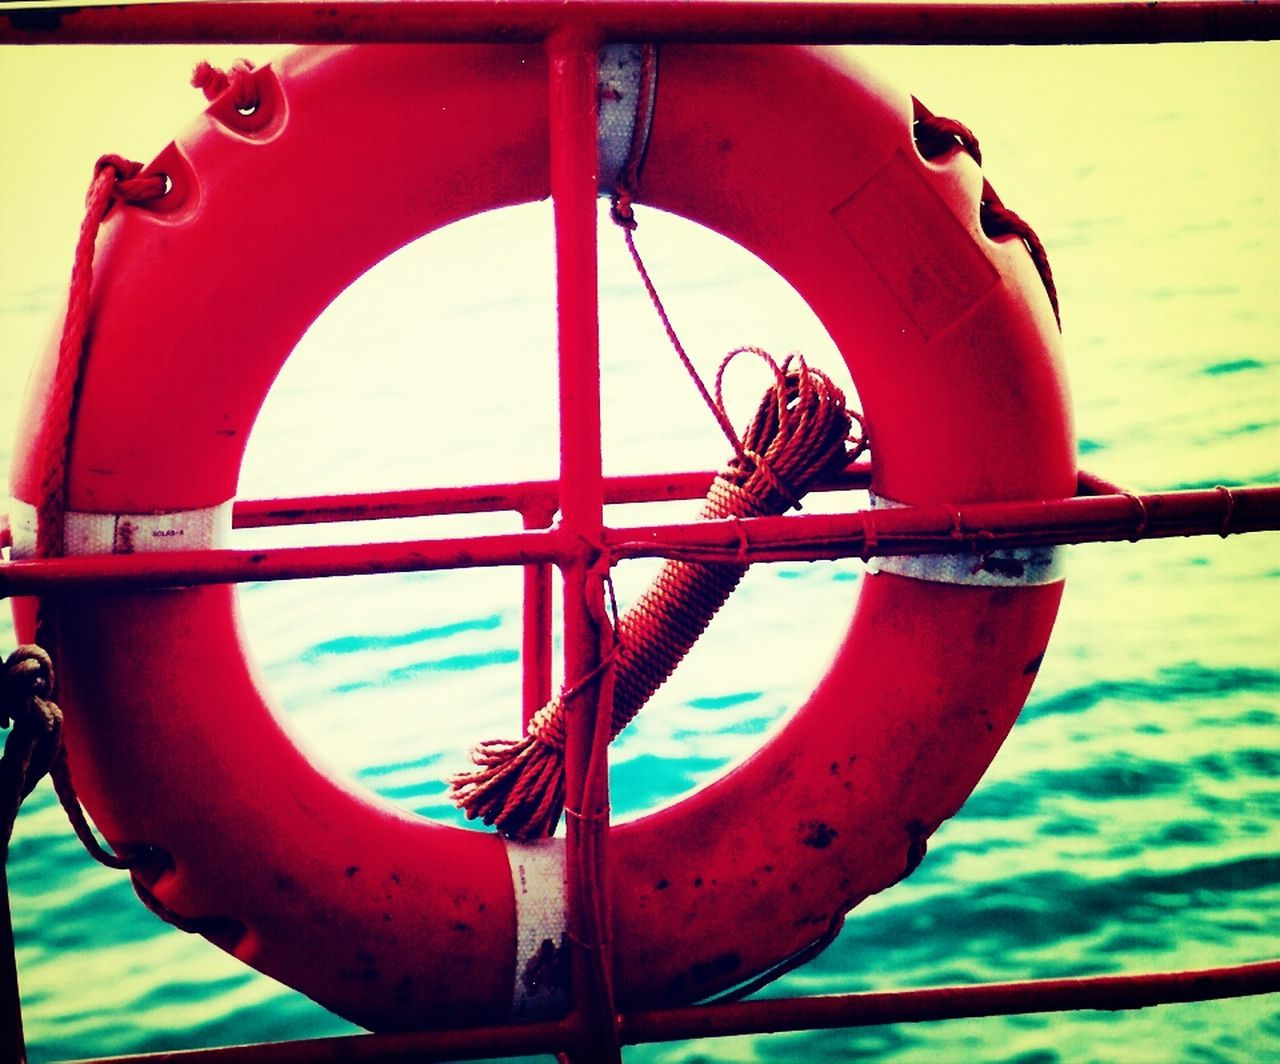 nautical vessel, outdoors, day, close-up, safety, no people, life belt, ship, red, water